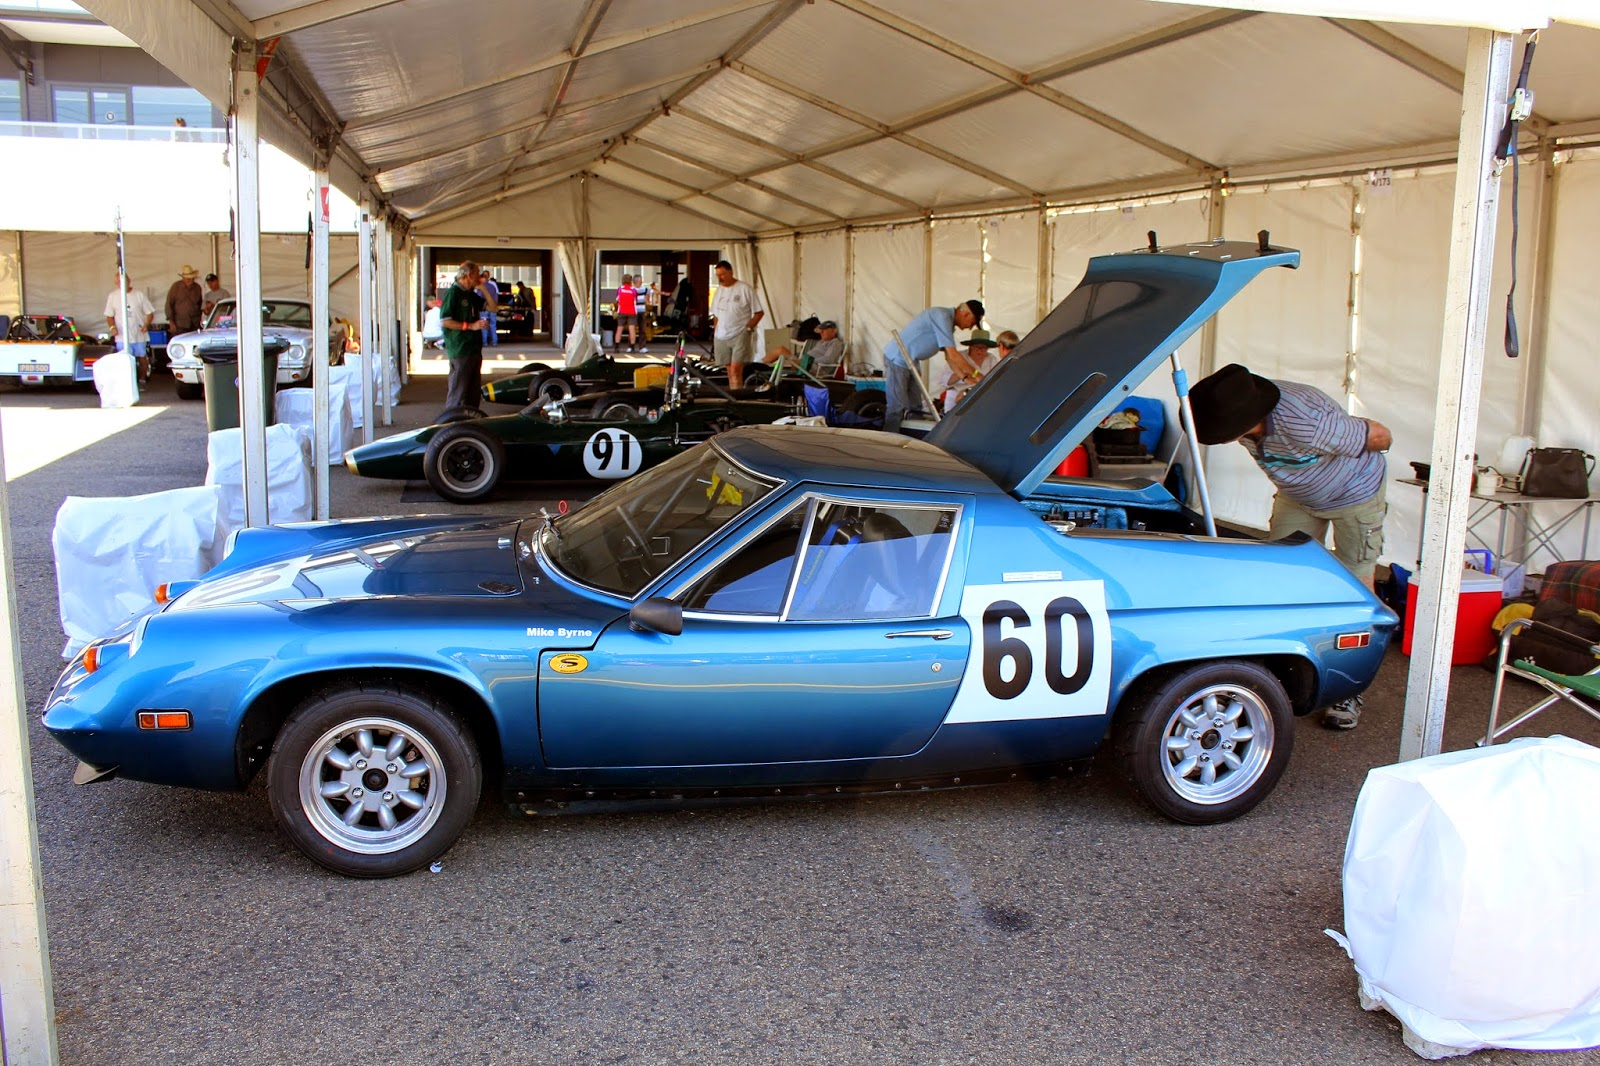 Aussie Old Parked Cars: 1973 Lotus Europa Race Car